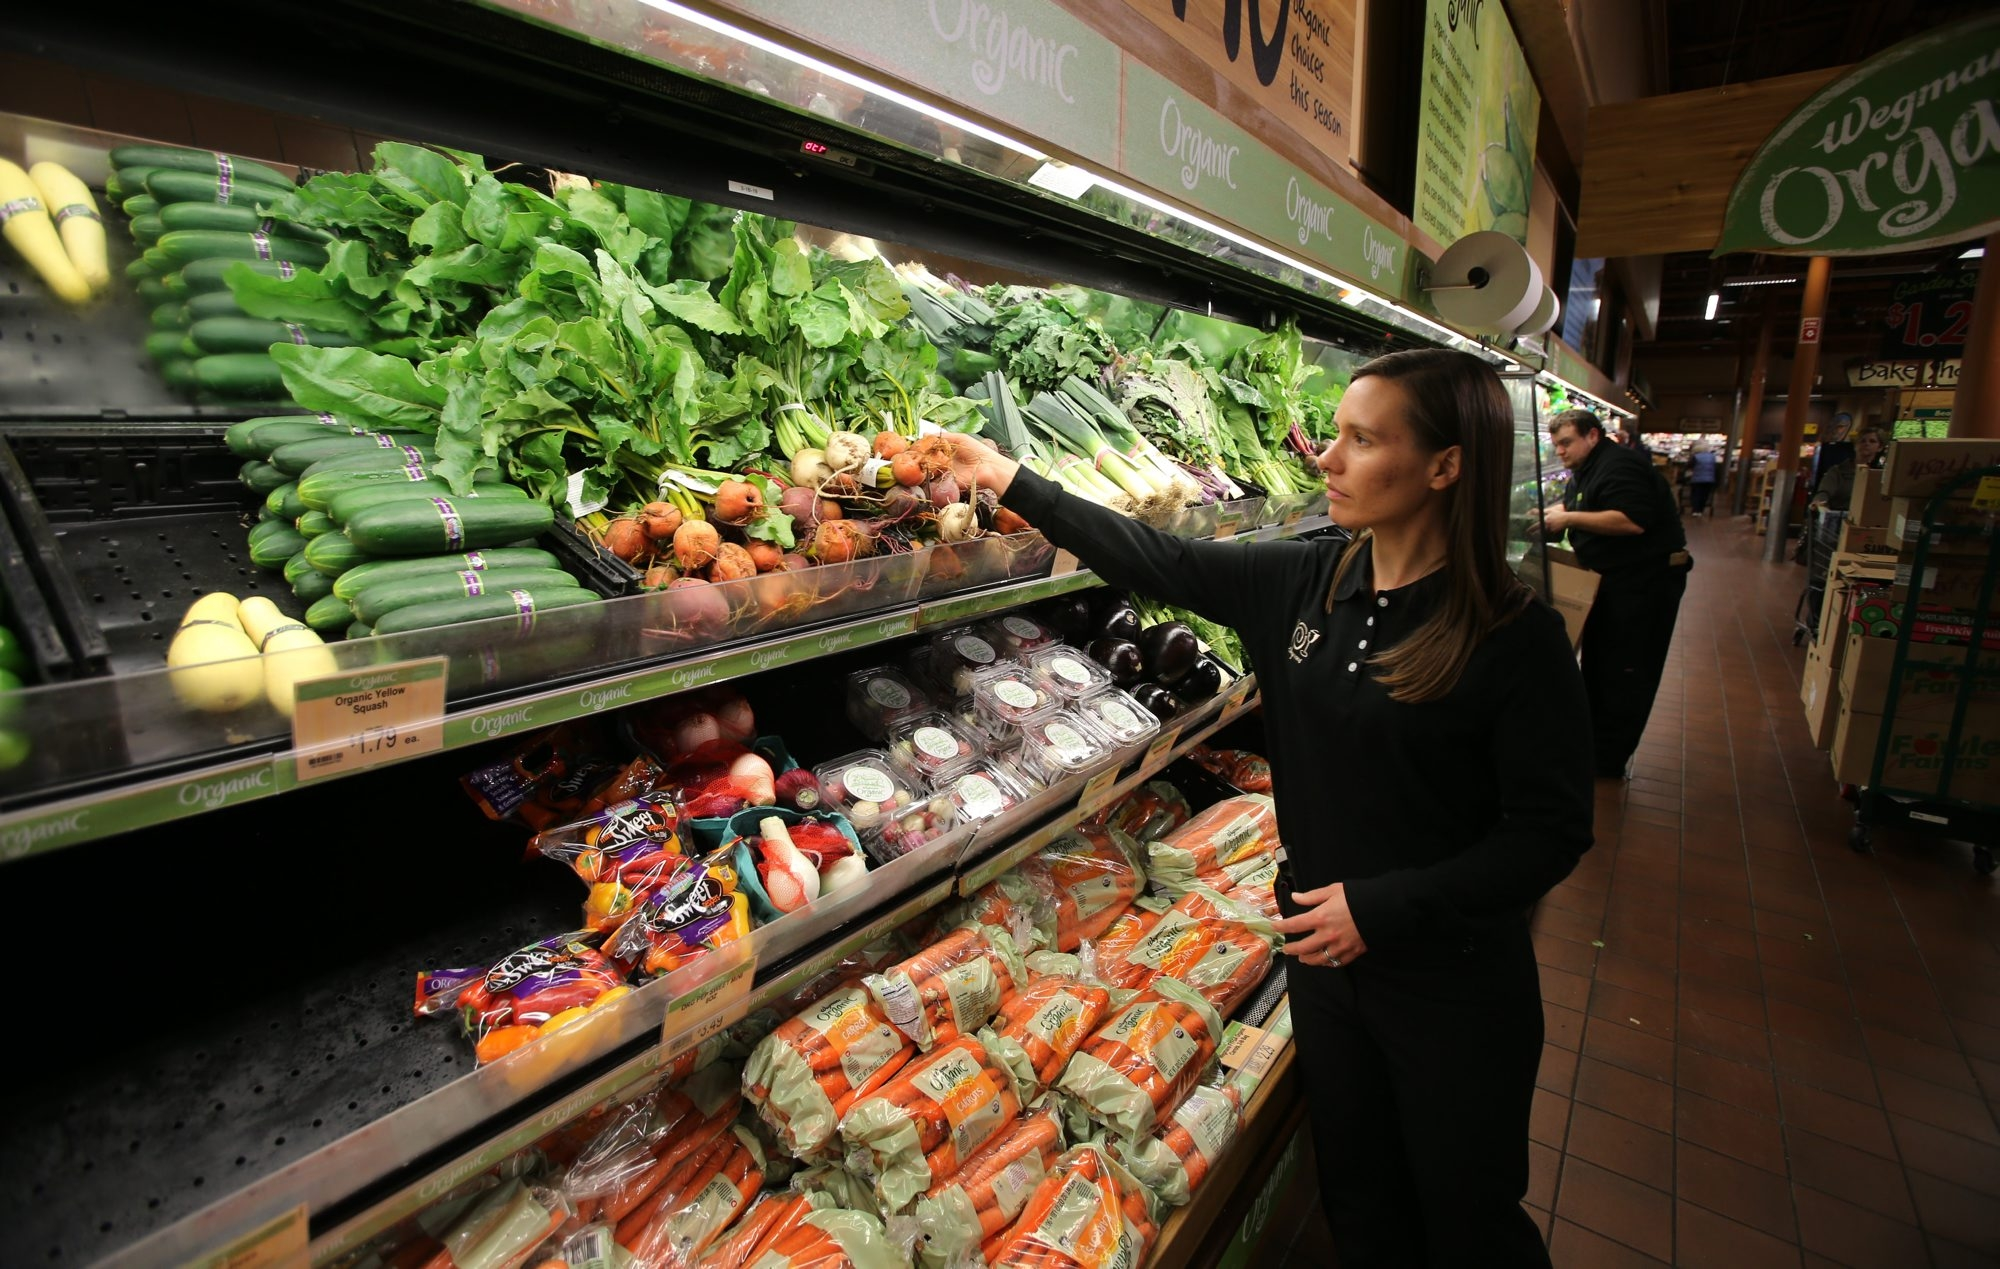 Wegmans drew the highest possible score for perishables, among other factors, in Consumer Reports' survey of the nation's supermarkets.